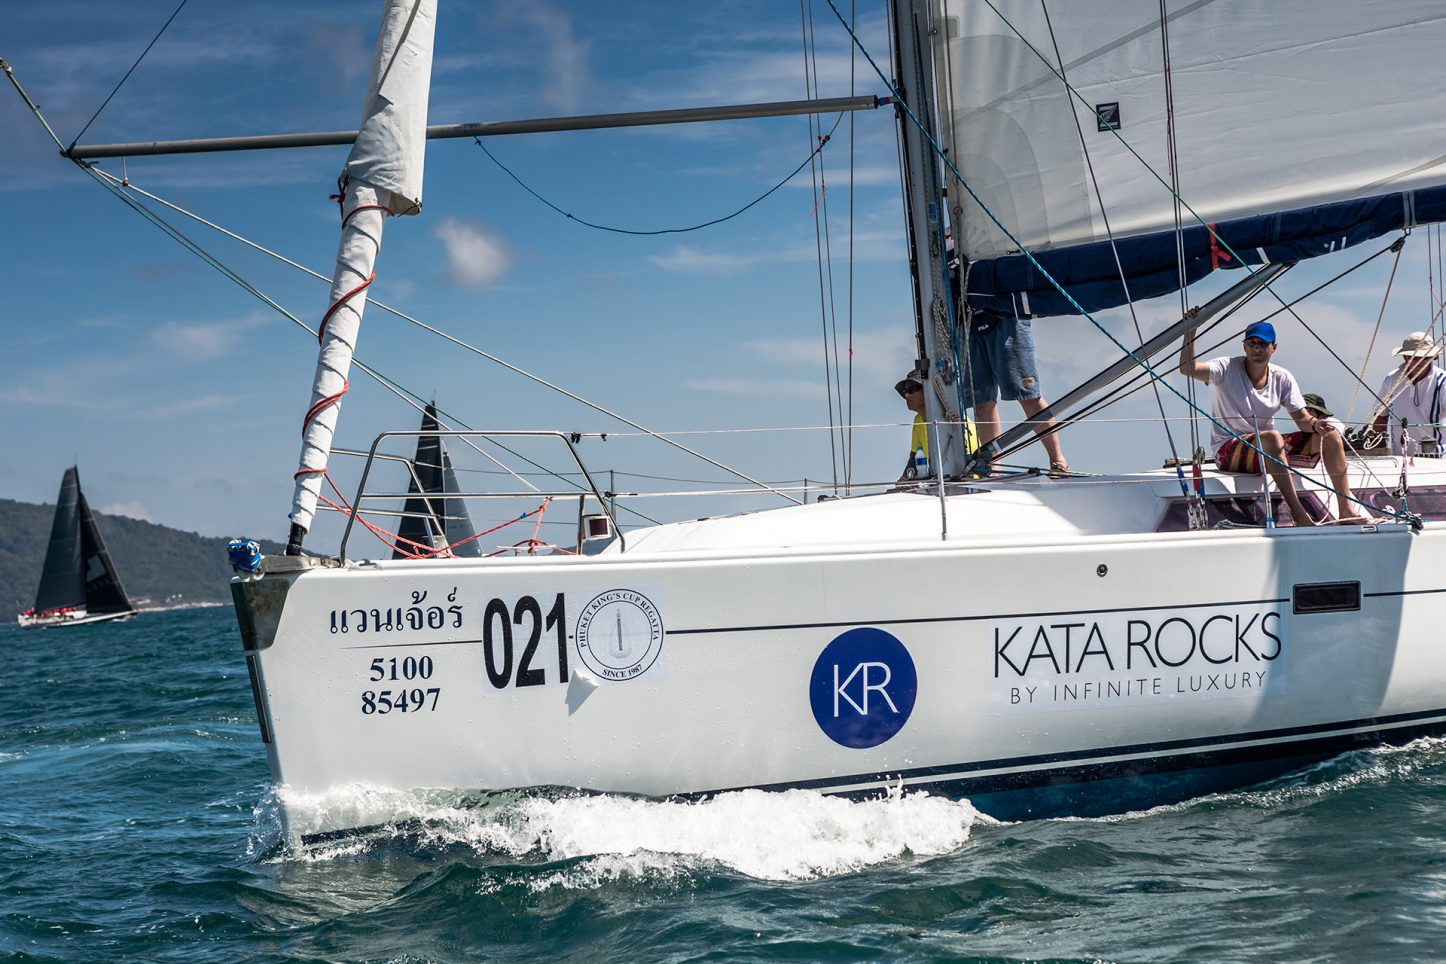 Kata Rocks Takes Top Honours at Phuket King's Cup Regatta 2017